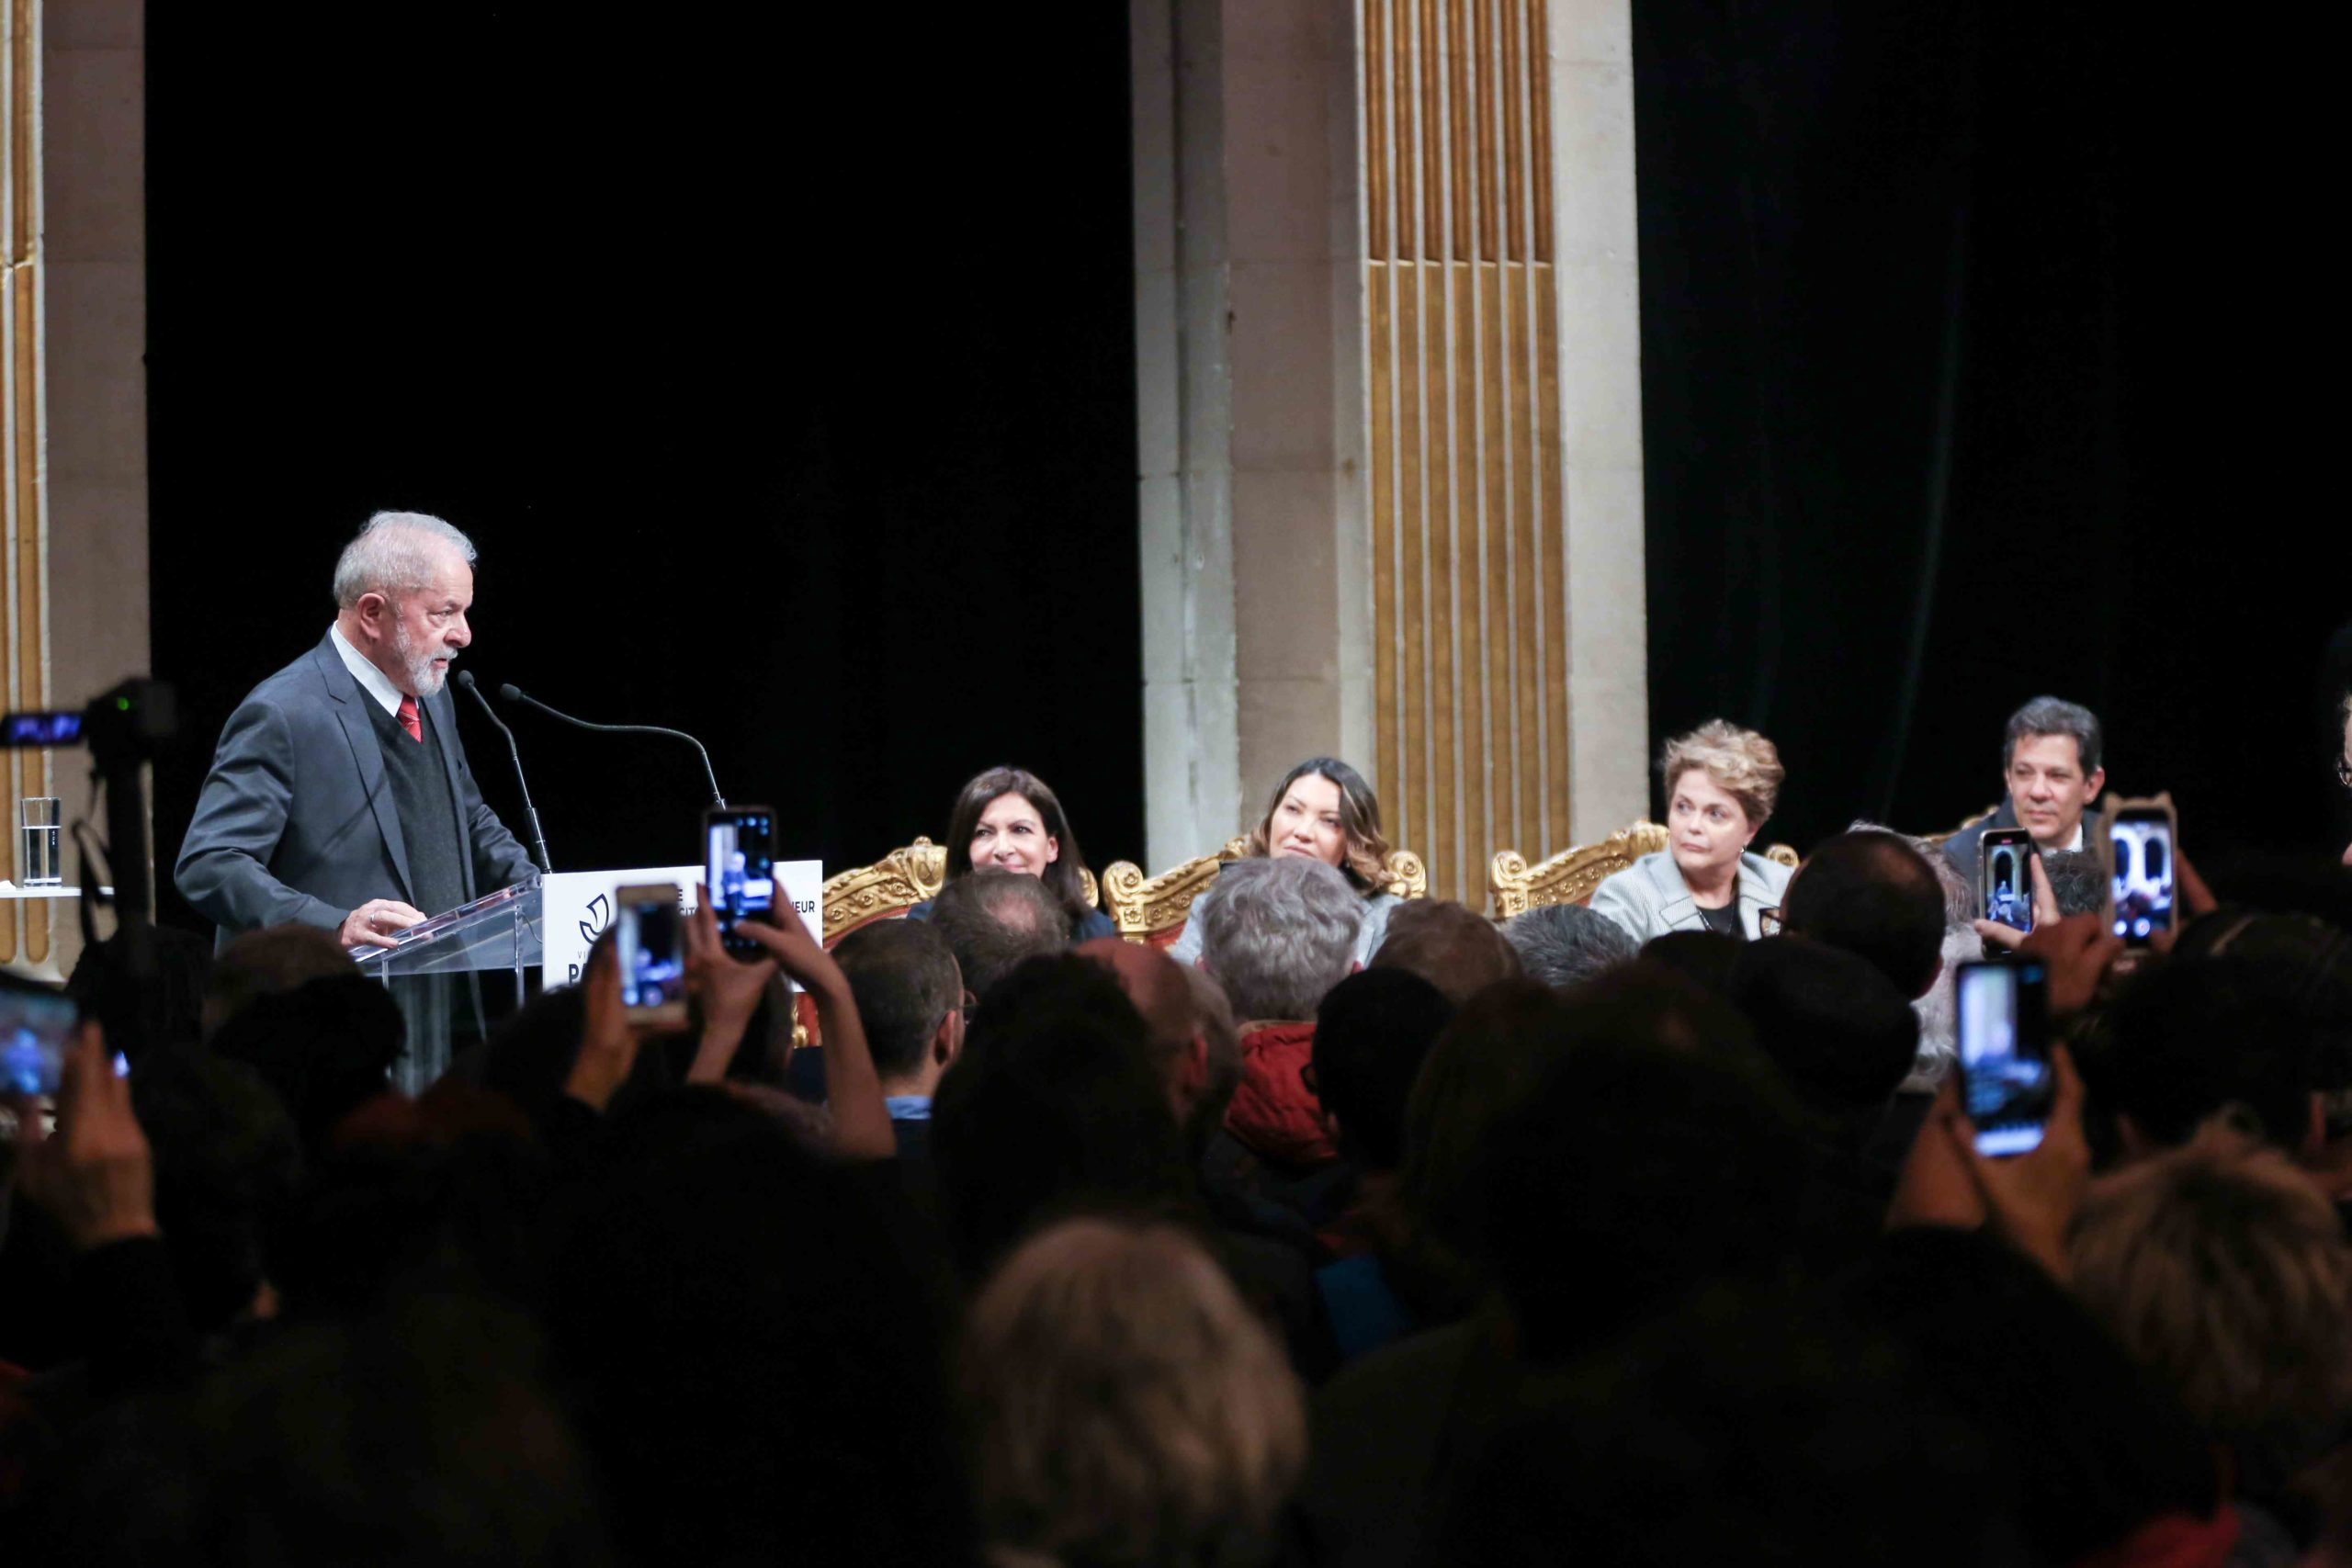 Former Brazilian president Luiz Inacio Lula da Silva (L), flanked by Paris Mayor and candidate for re-election Anne Hidalgo (4R) , Former Brazilian president Dilma Rousseff (3R) and former Sao Paolo Mayor Fernando Hadda (1st R) speaks during a ceremony at